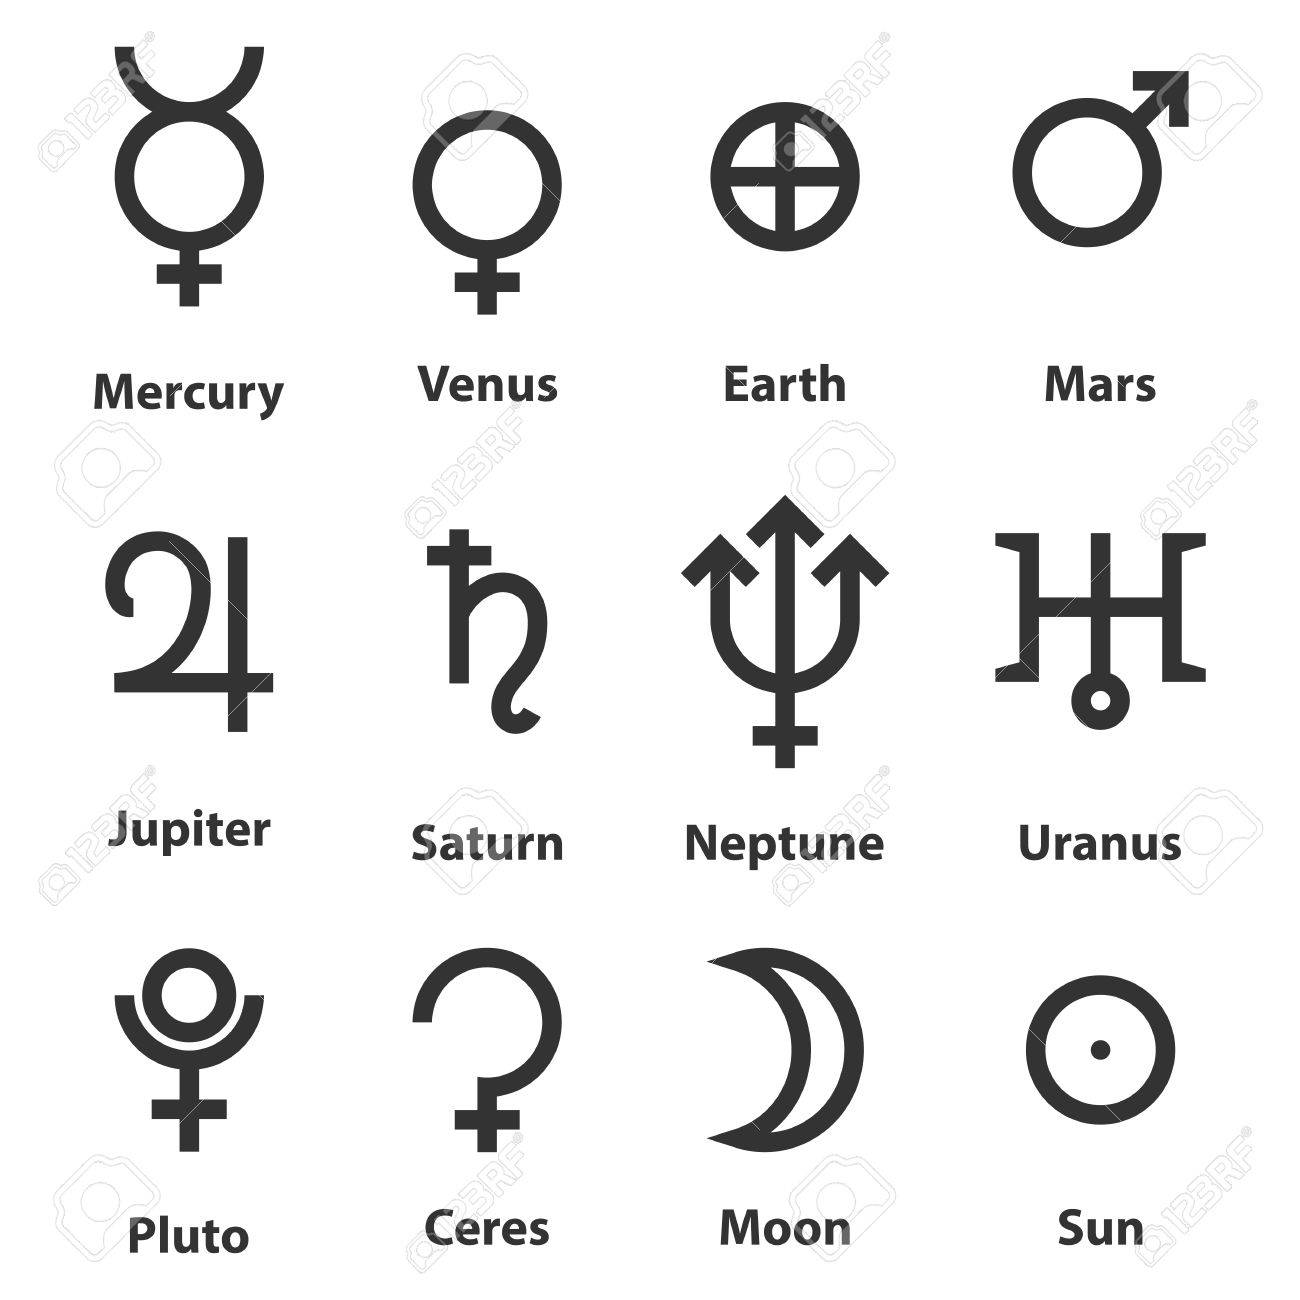 Zodiac and astrology symbols of the planets royalty free cliparts zodiac and astrology symbols of the planets stock vector 68283377 buycottarizona Choice Image